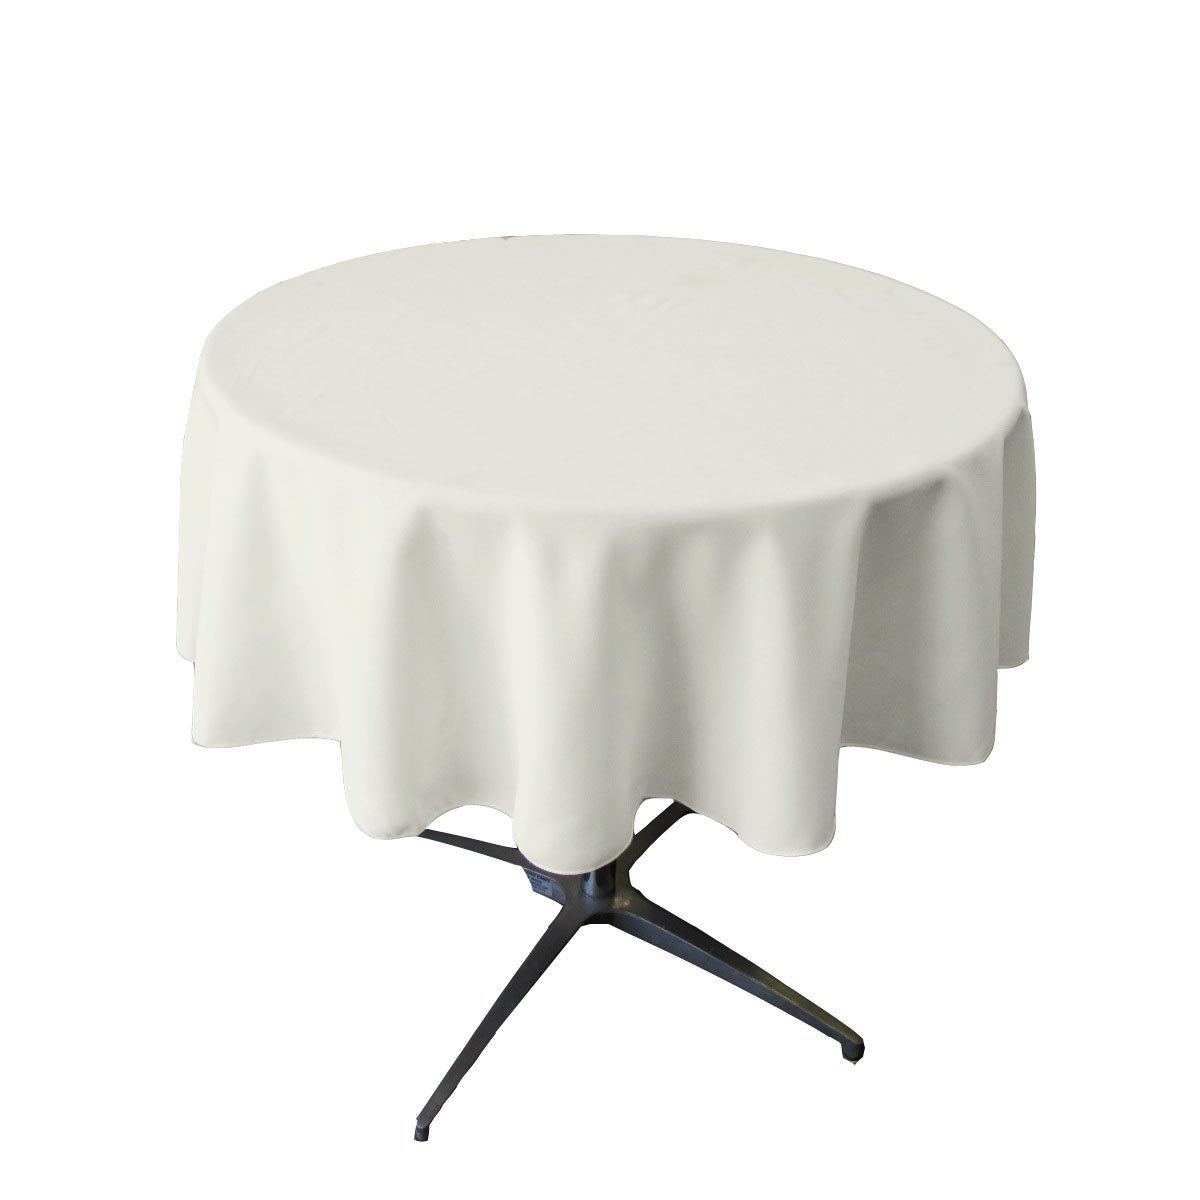 tablecloth small polyester round inch white for accent table broward linens home kitchen narrow console hallway decorative pieces dining tall nightstands bistro set modern glass